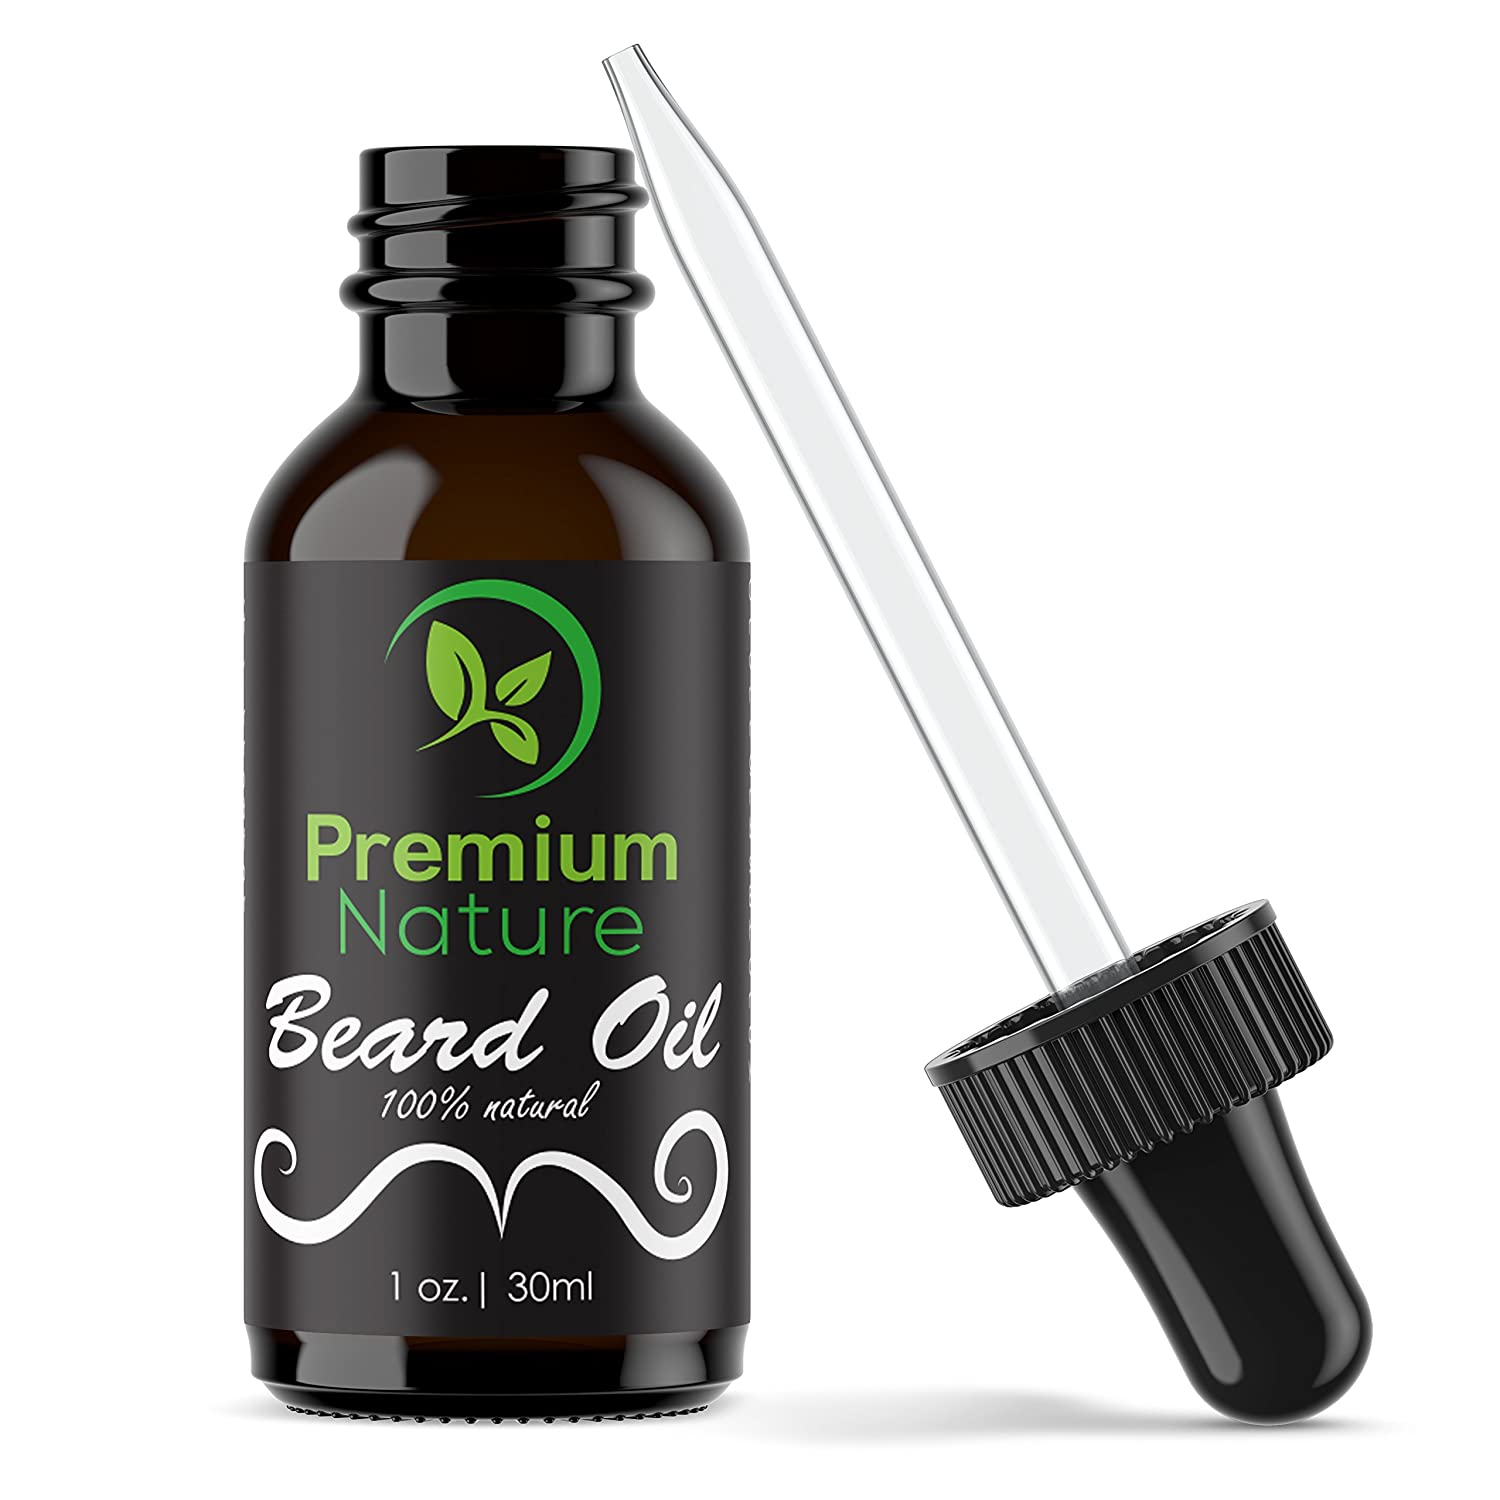 Beard Oil Conditioner for Men - Beard Balm Leave In Conditioner for Moustache & Beard Growth, Beard Care Kit Softener Soothe Wax & Moisturize Skin & Hair Cream Castor Jojoba & More Essential Oils Premium Nature